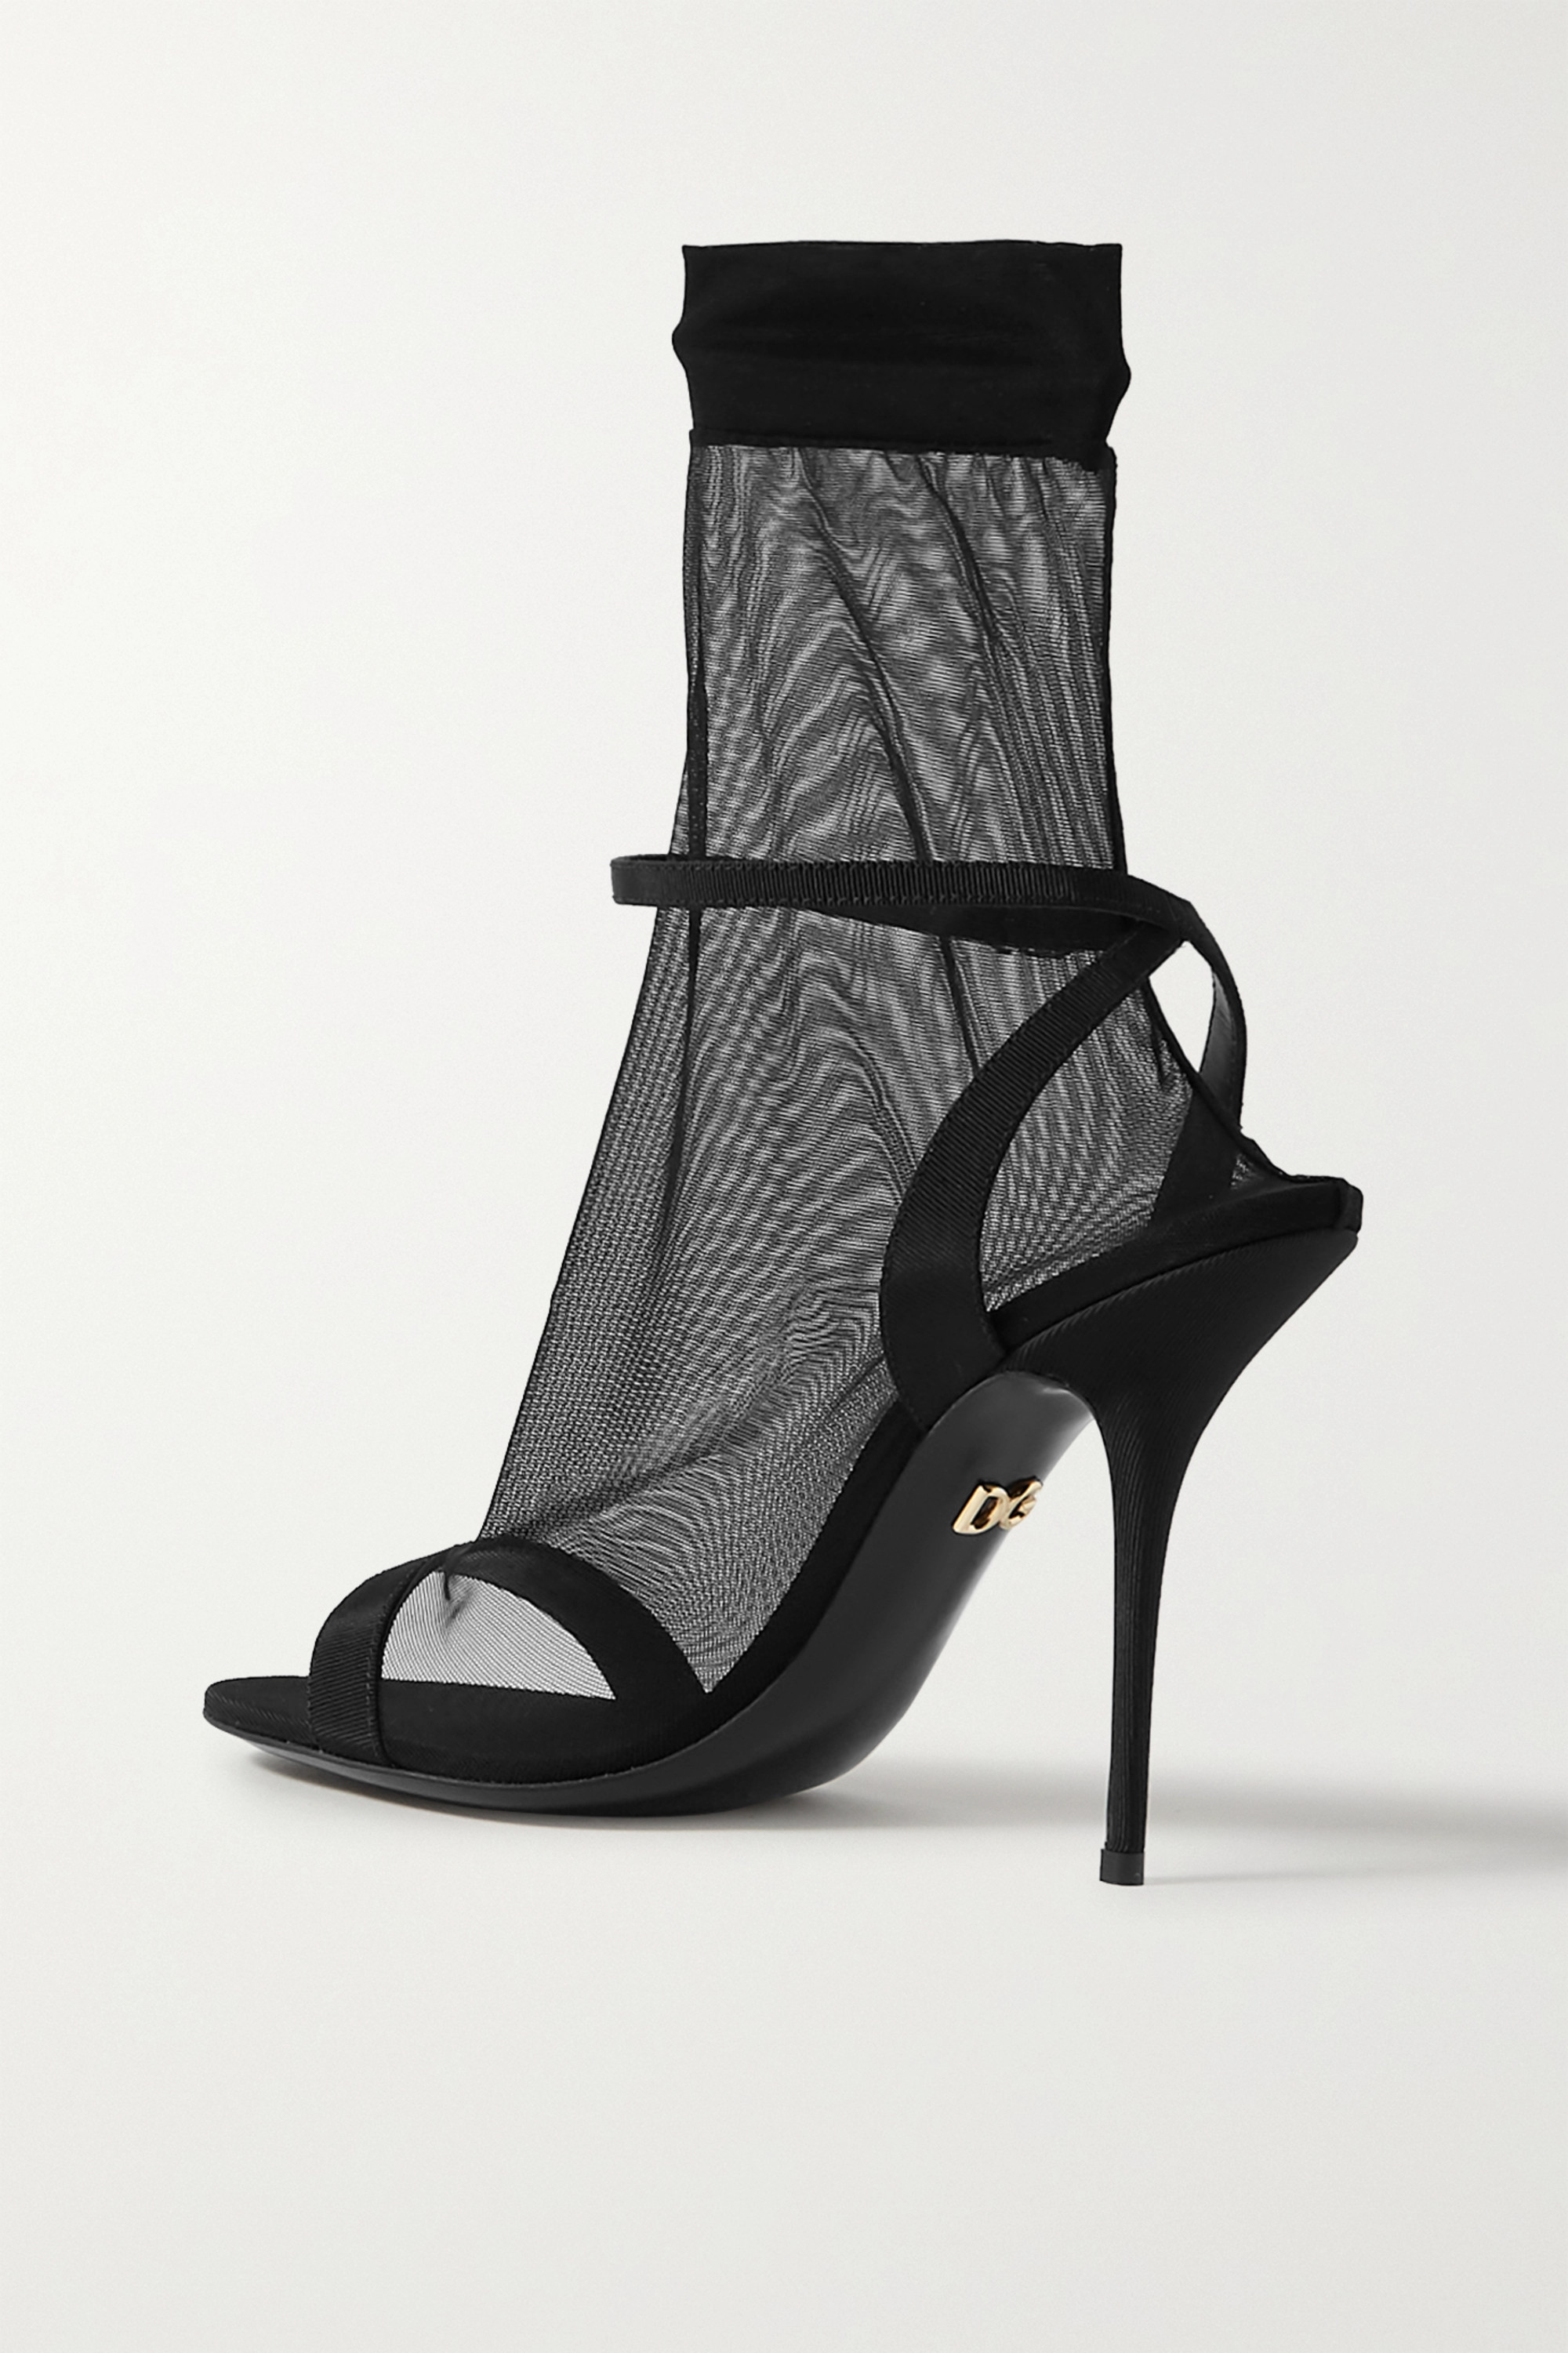 Dolce & Gabbana Tulle and grosgrain sandals